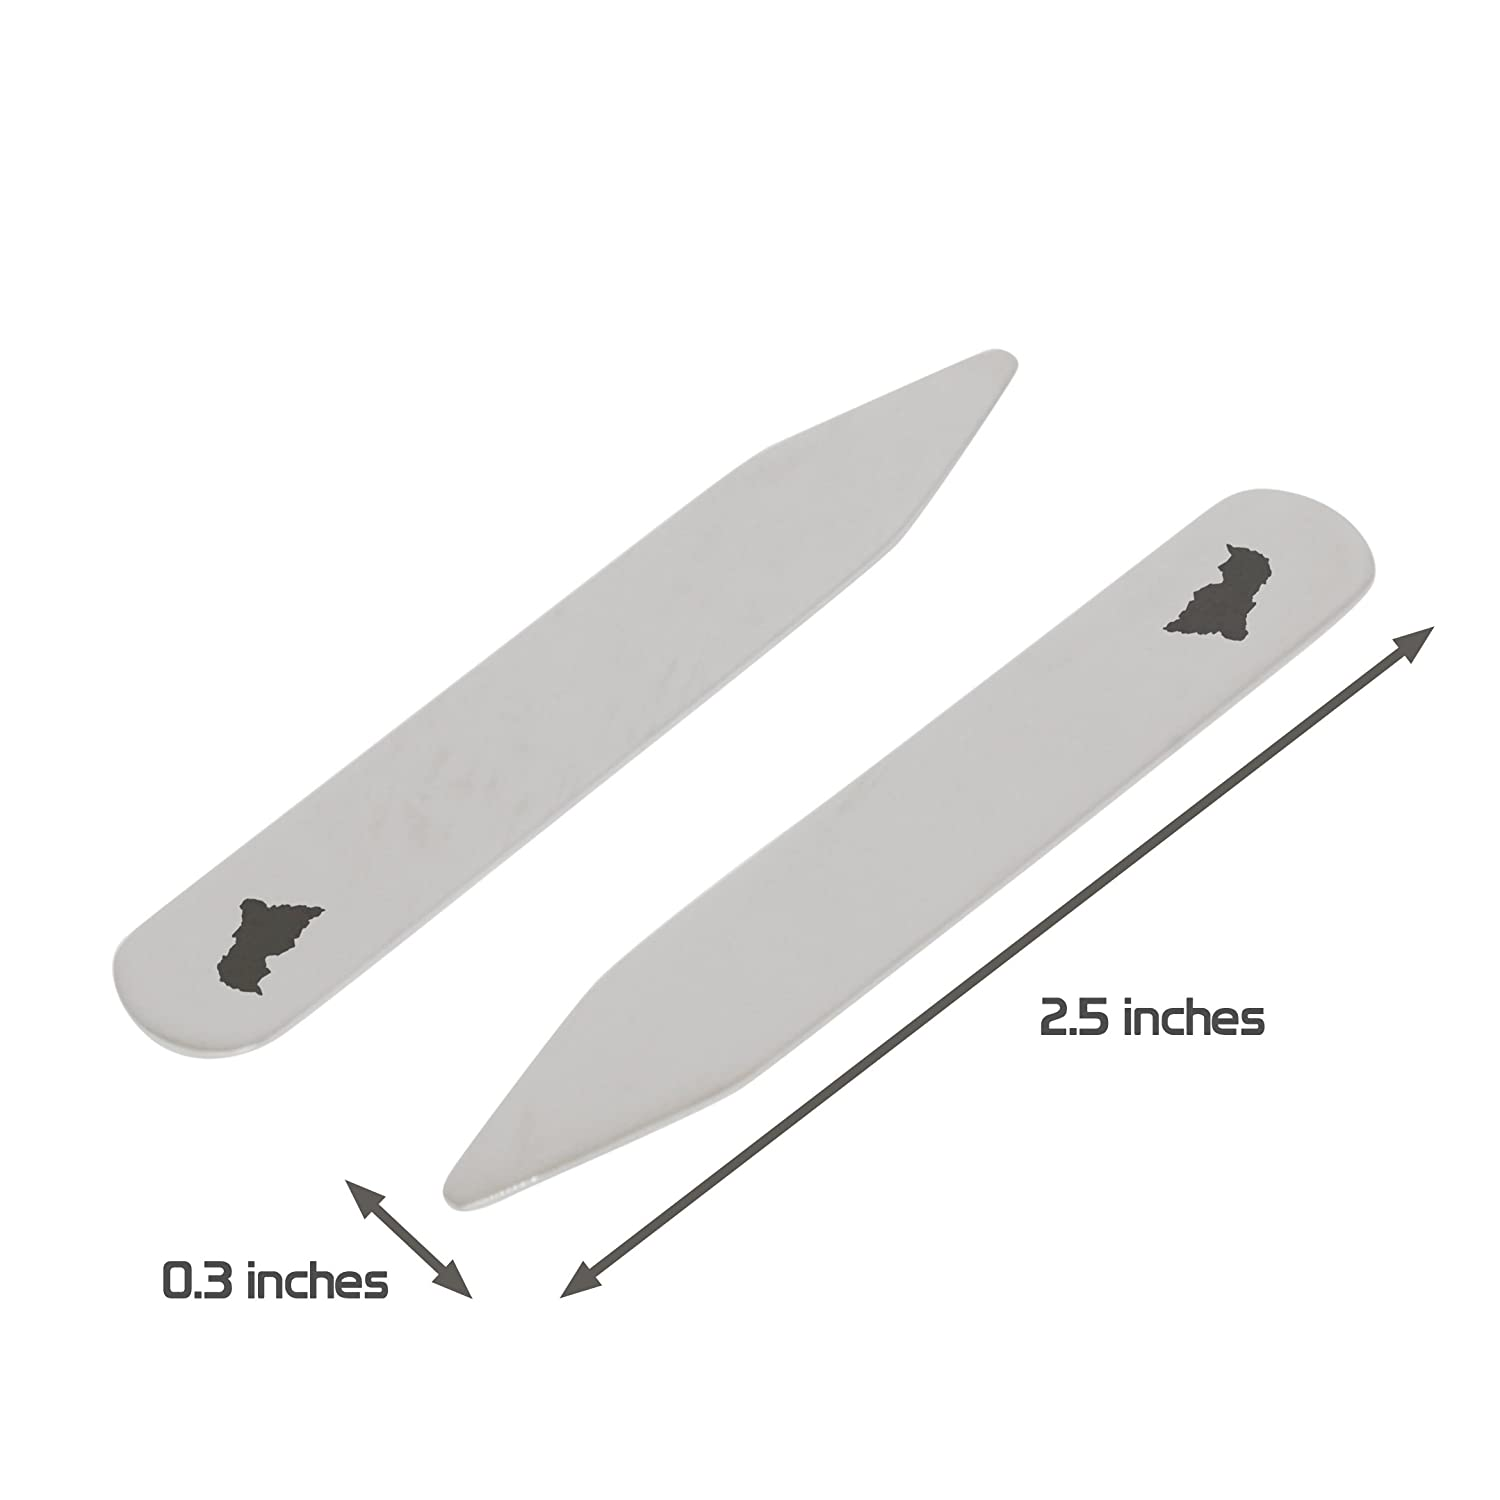 Made In USA 2.5 Inch Metal Collar Stiffeners MODERN GOODS SHOP Stainless Steel Collar Stays With Laser Engraved Central African Republic Design